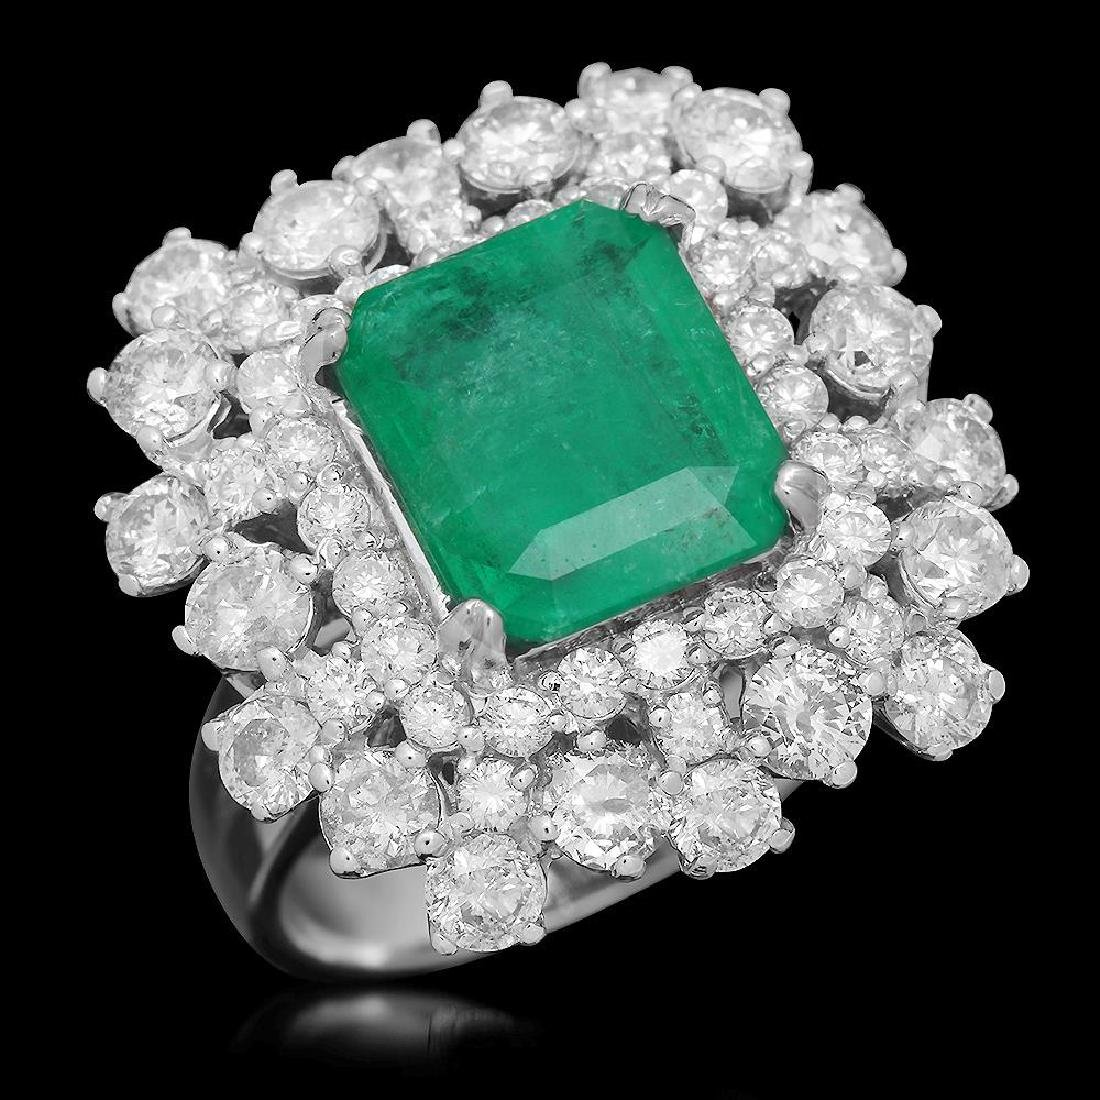 14K Gold 2.96 Emerald 2.81 Diamond Ring